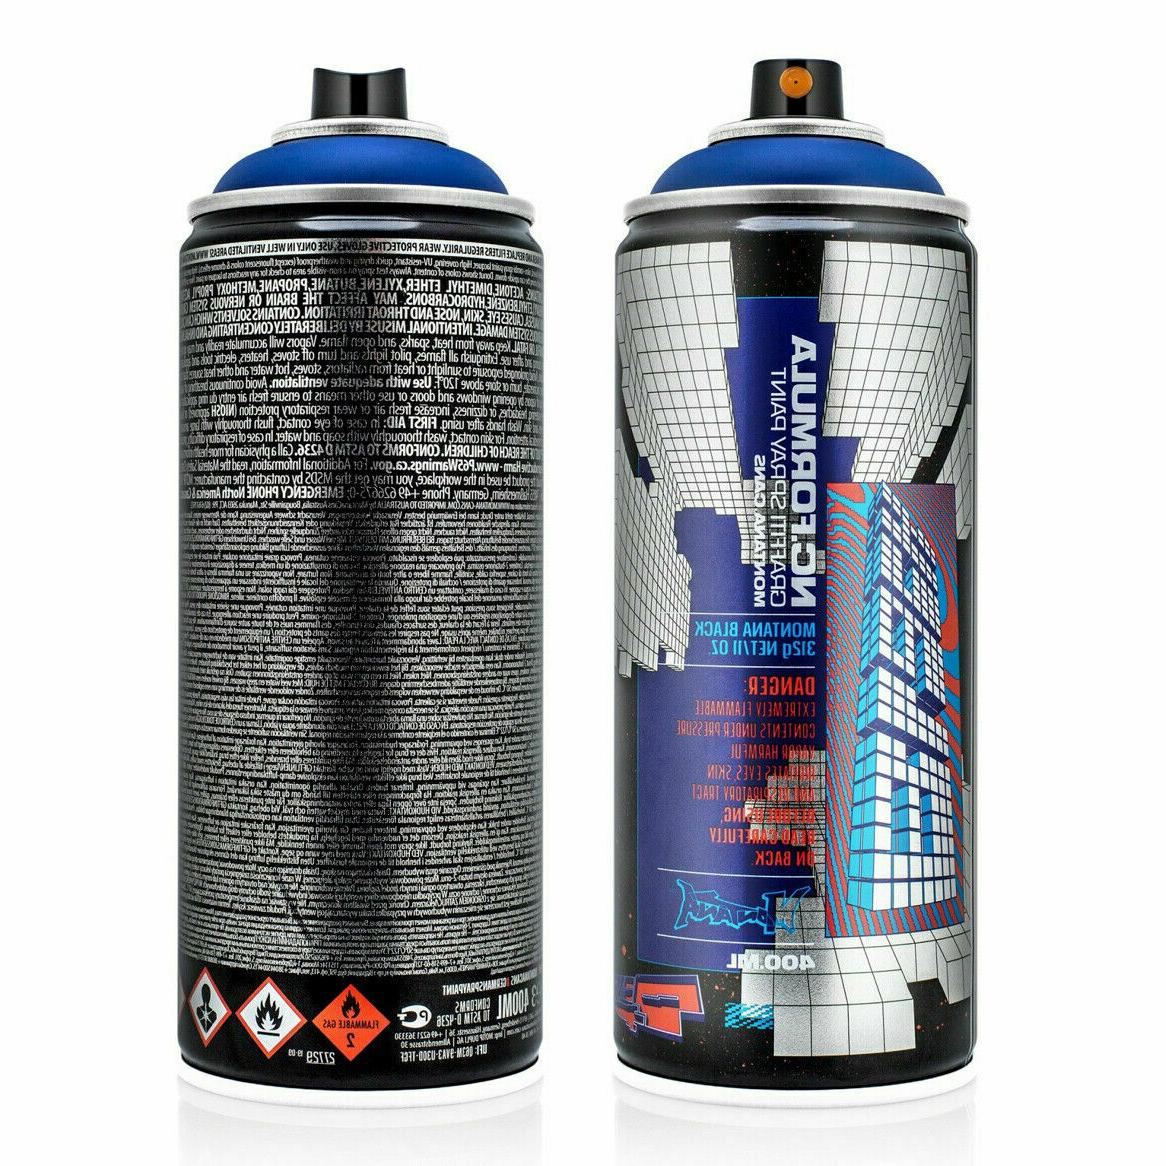 mtn limited edition spray paint can dems